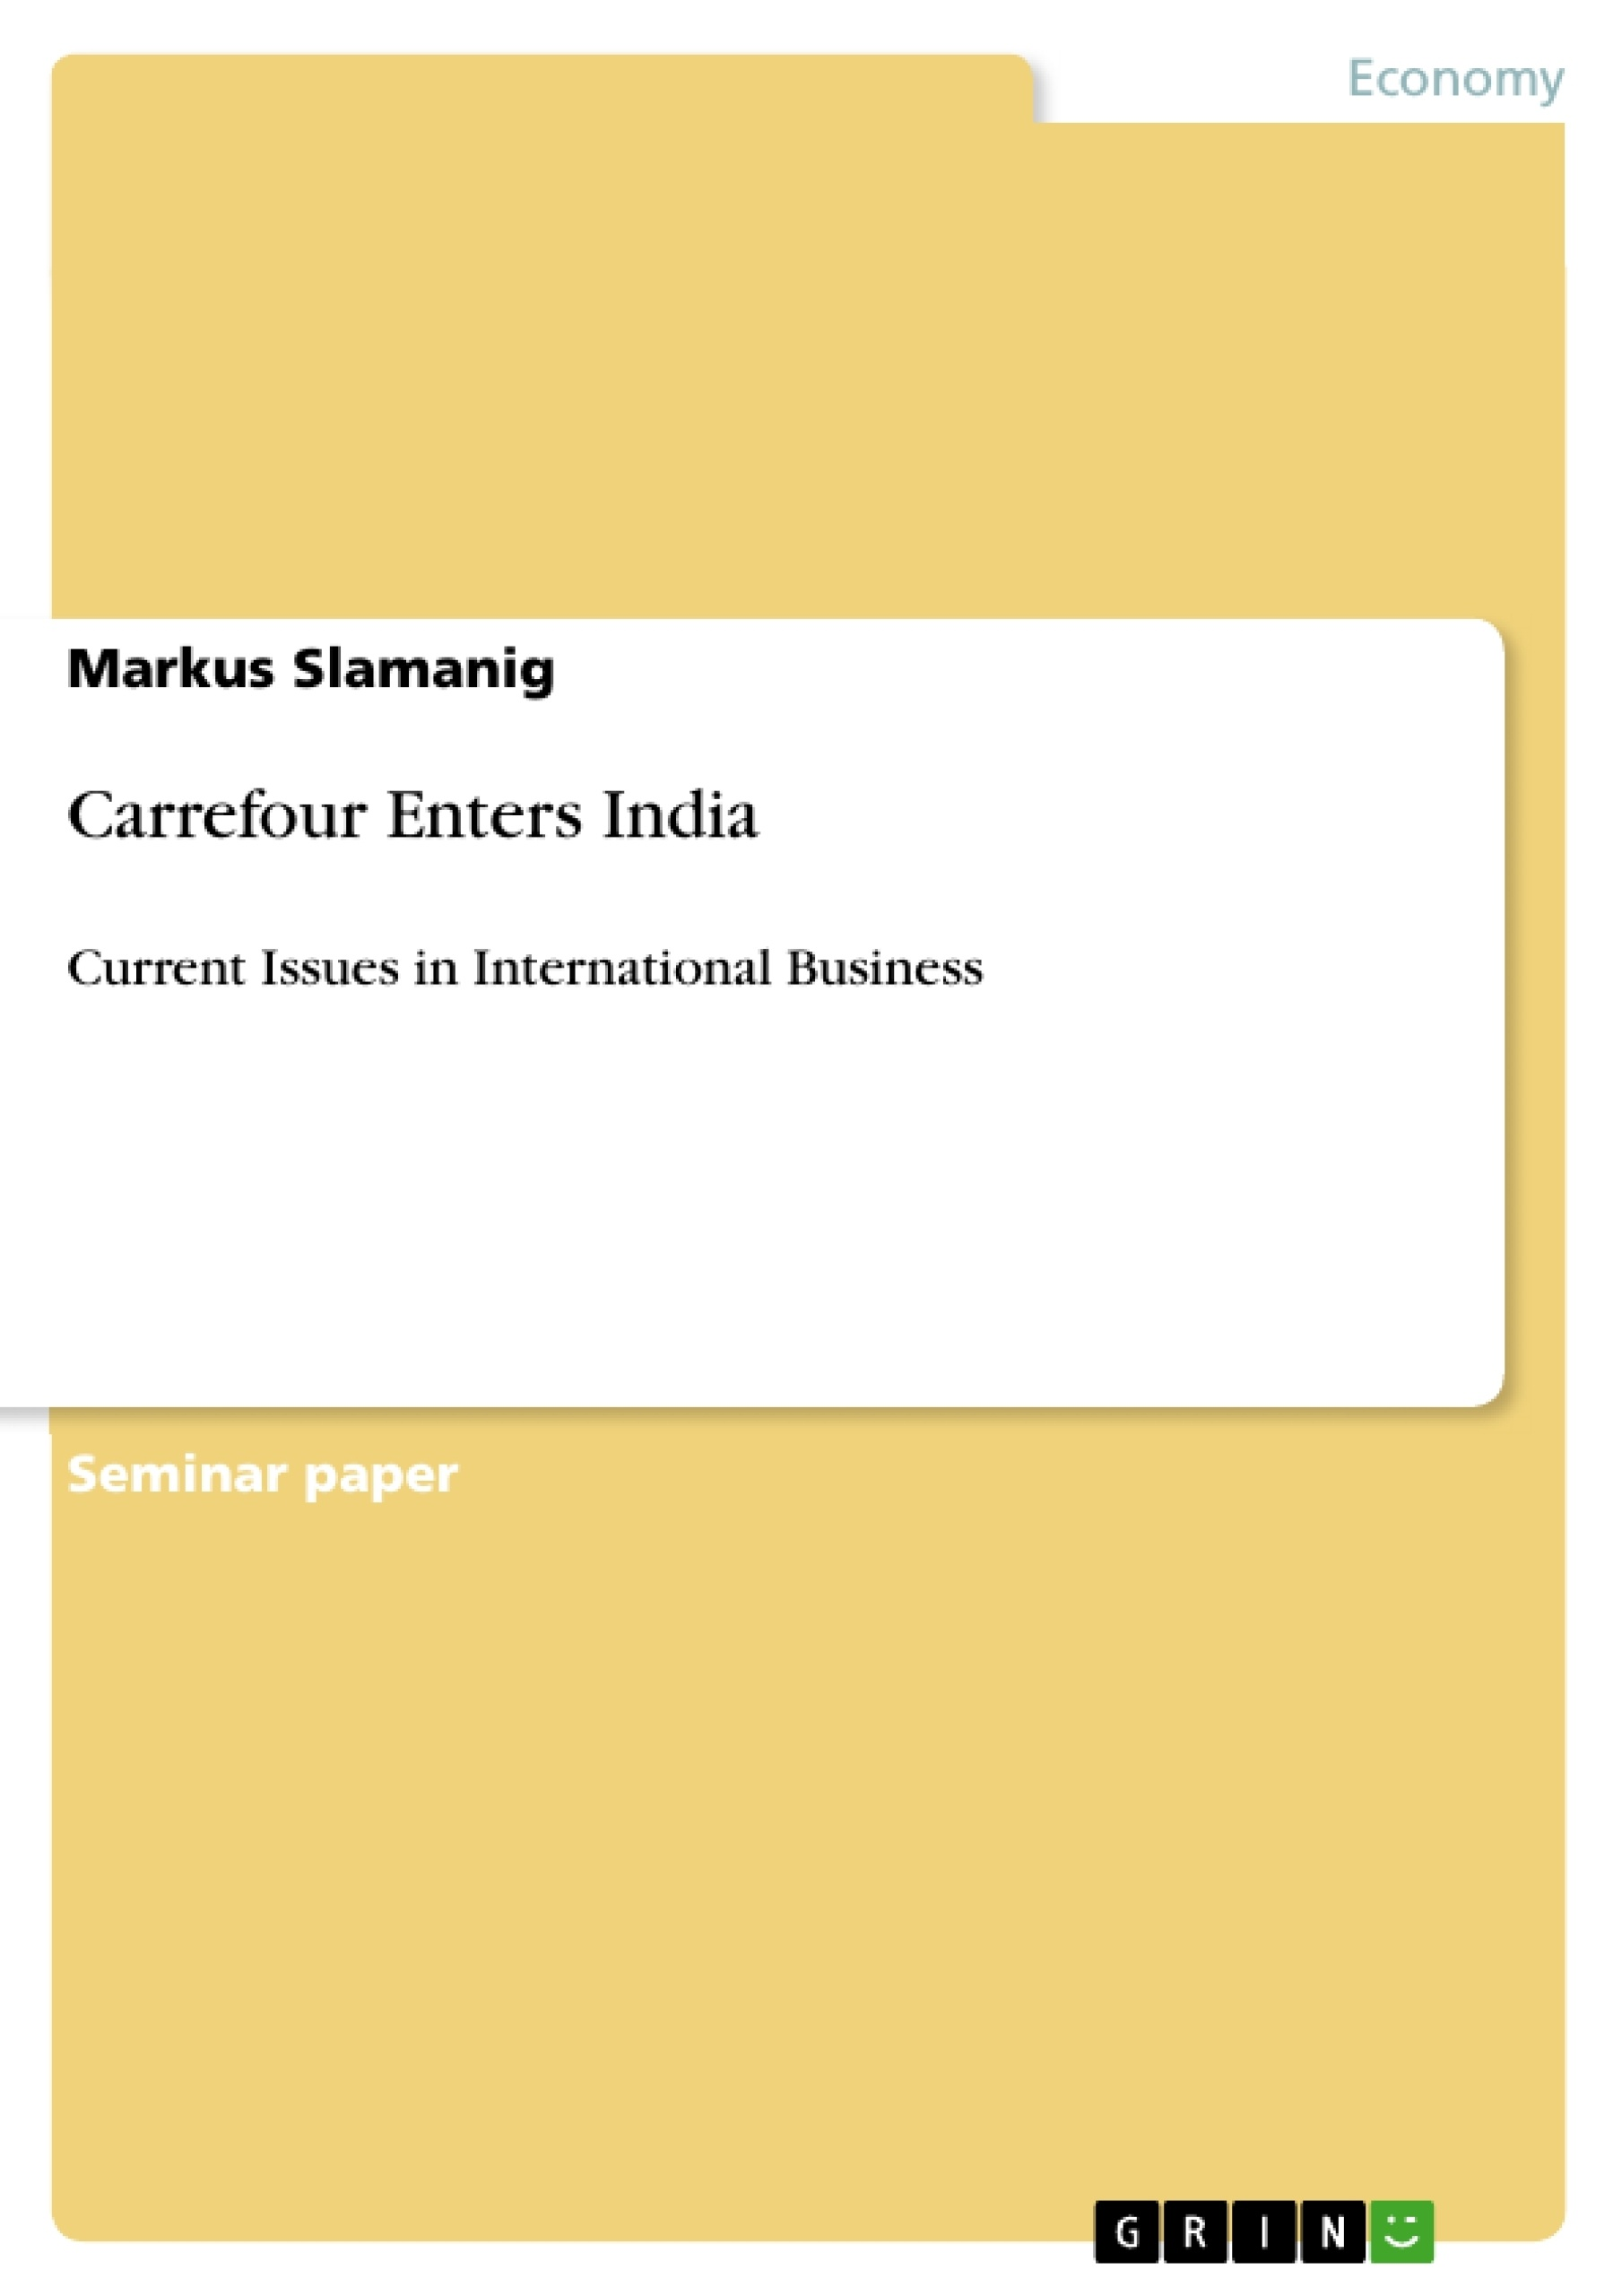 Title: Carrefour Enters India